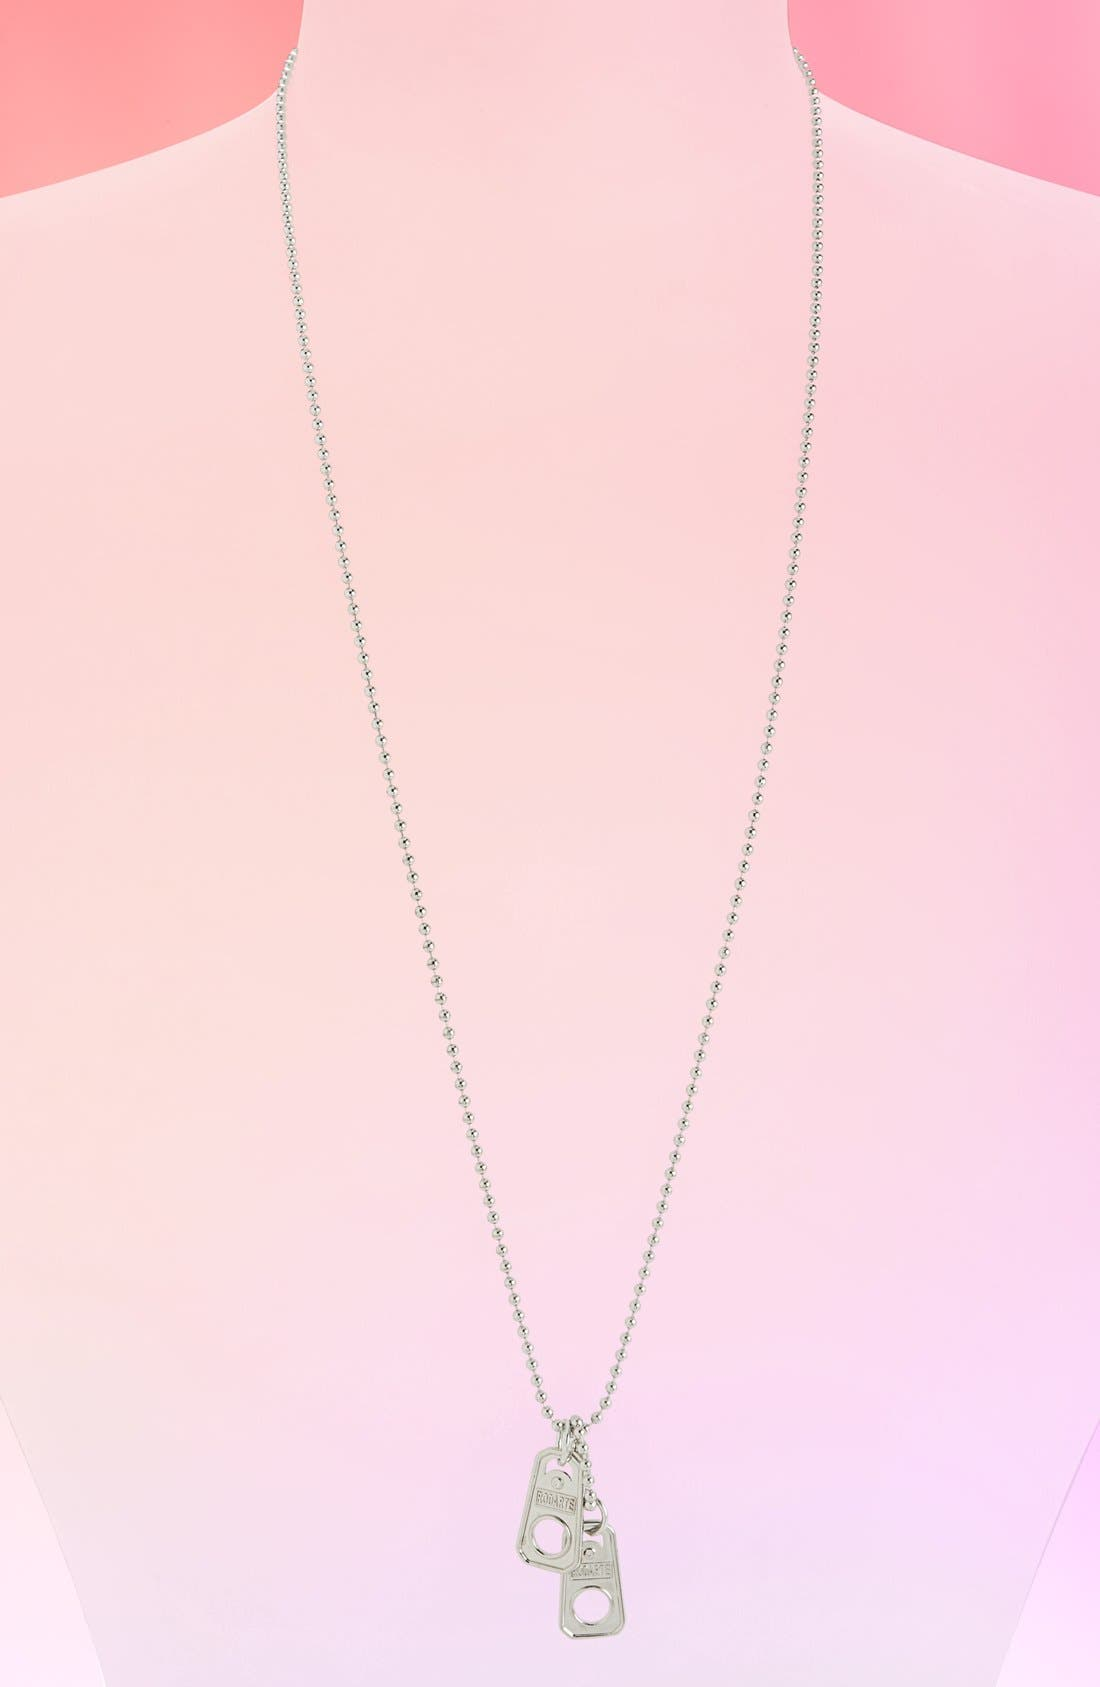 Ball Chain Necklace with Soda Can Pull Tab Pendants,                             Main thumbnail 1, color,                             040